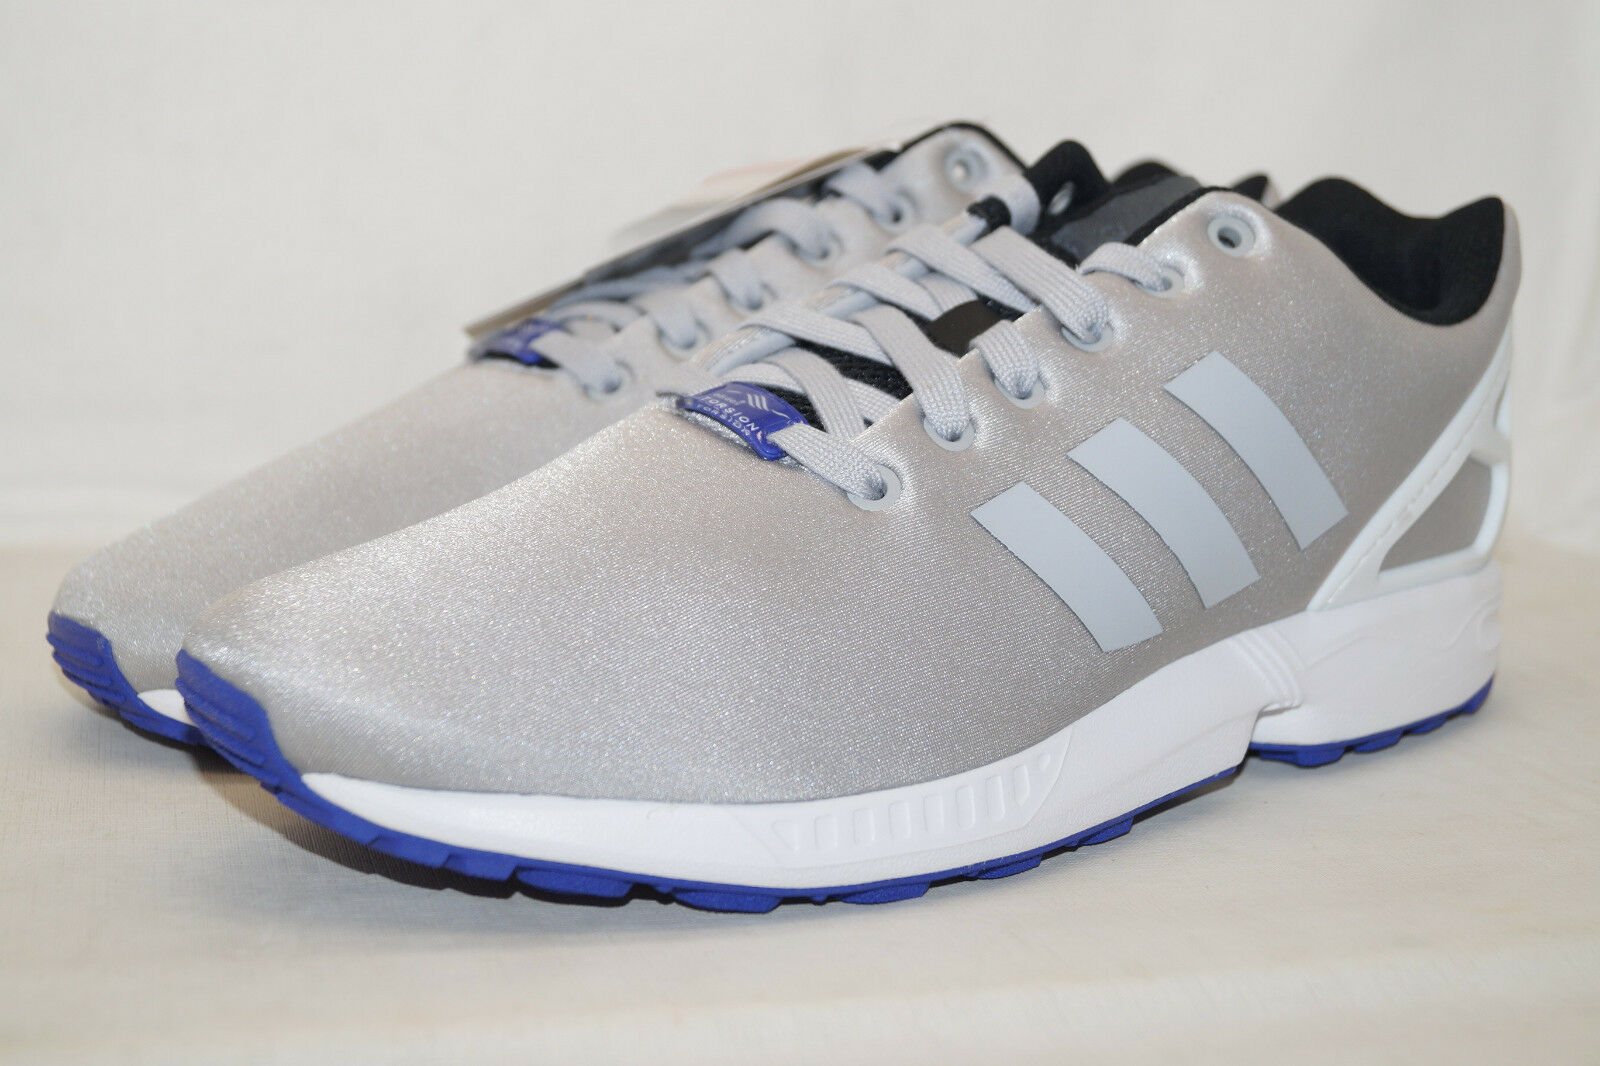 Adidas originals zx - grau, flux - torsion uk11 grau, - silber b34505 sneaker 1a535c